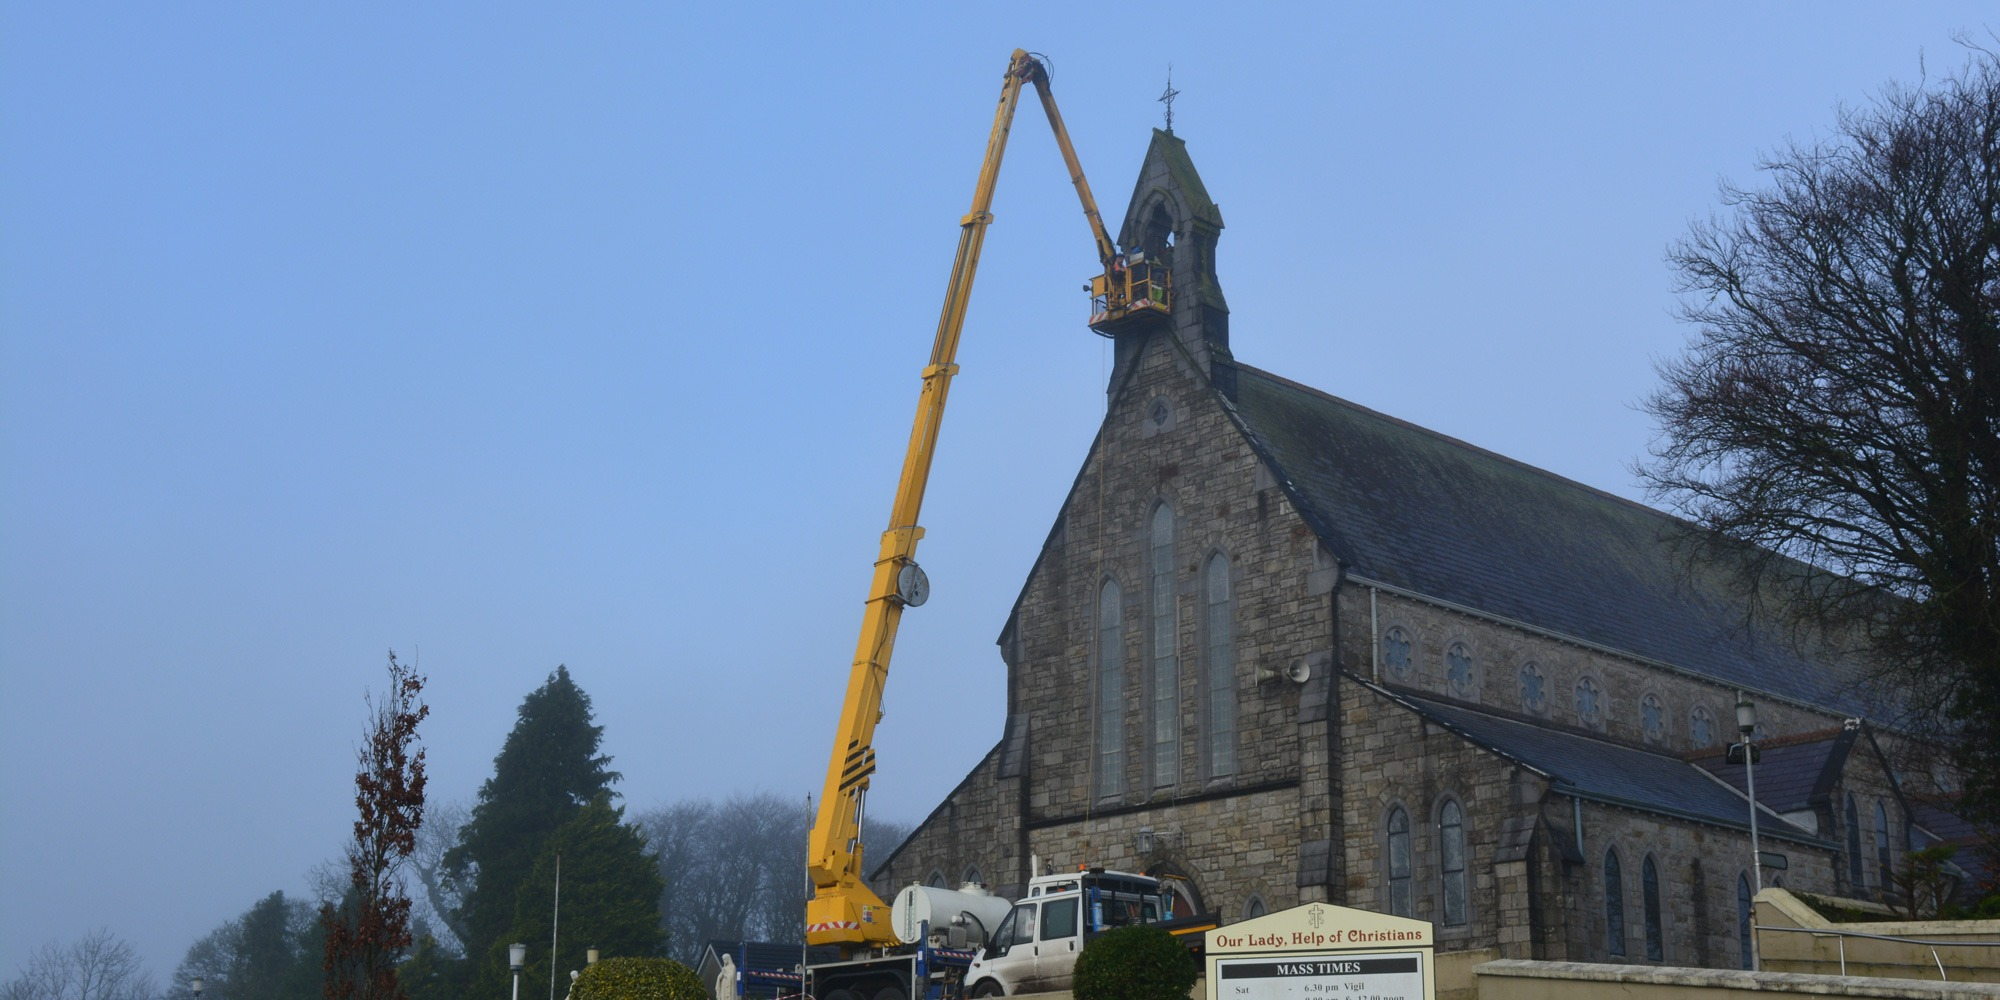 Church-Roof-Cleaning-Contractors-Mayo,-Sligo,-Roscommon,-Galway-Ireland